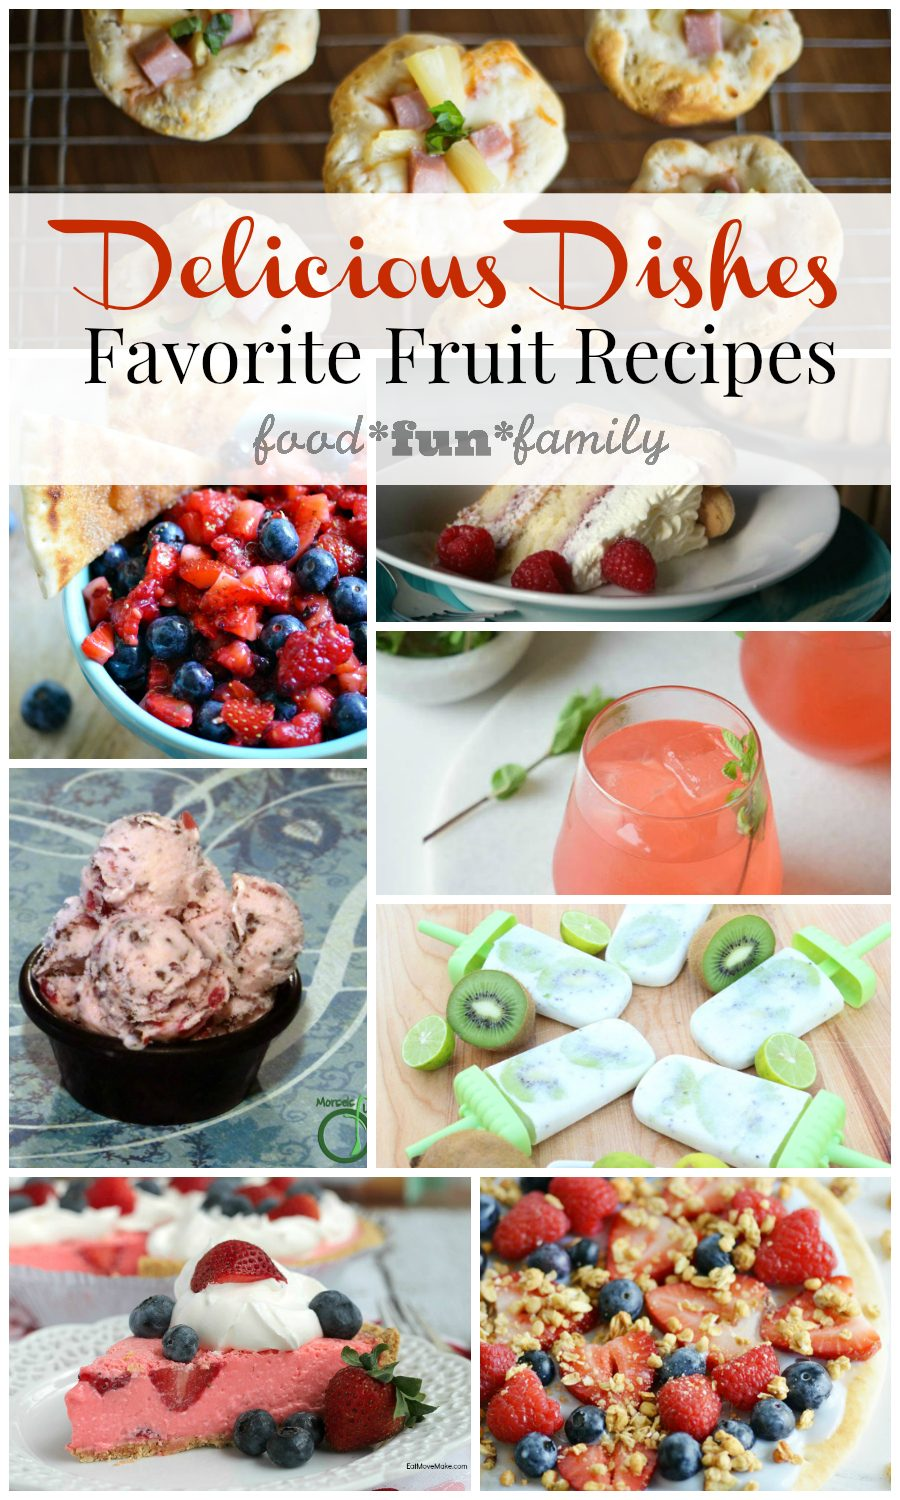 Delicious Dishes Recipe Party #28 Favorite fruit recipes - Food Fun Family